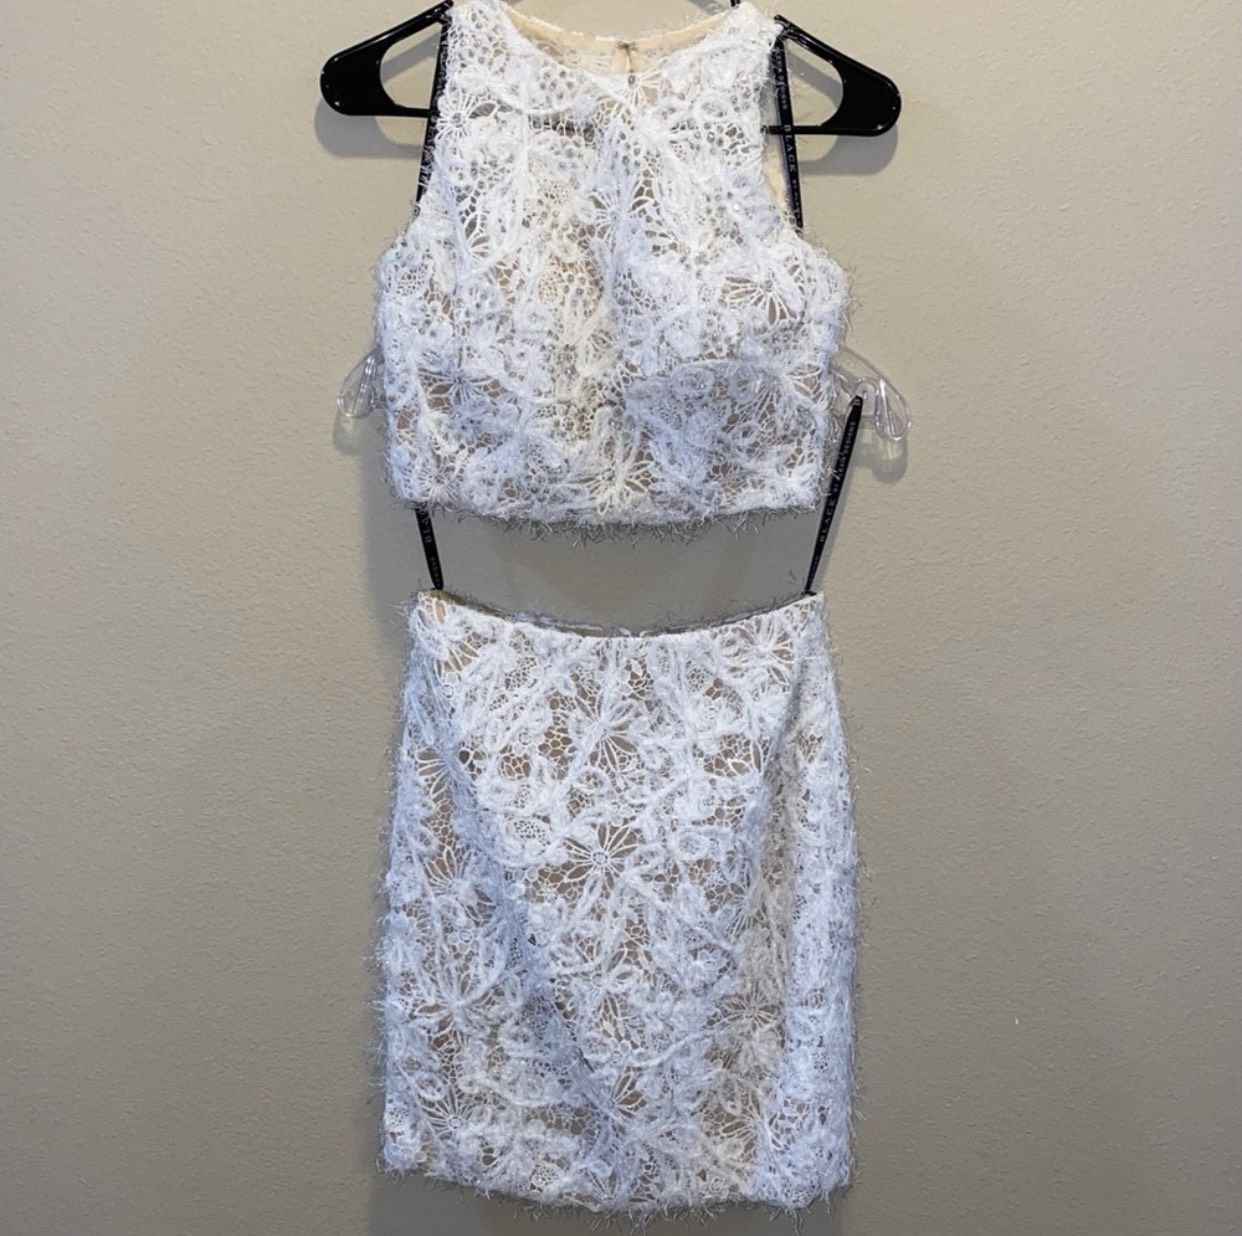 Black by Alexia Designs White Size 2 Lace Mini Cocktail Dress on Queenly